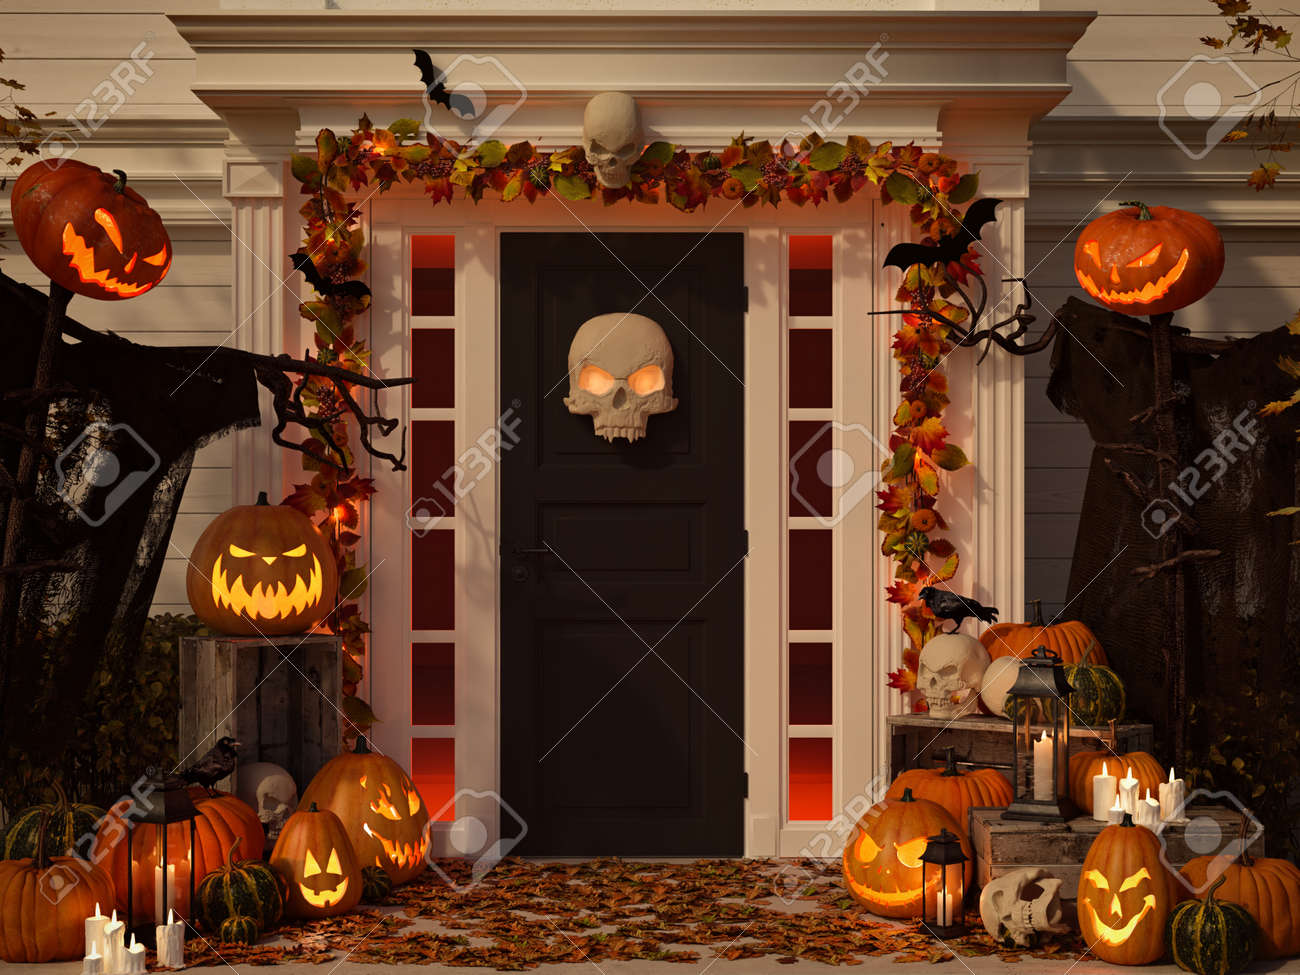 halloween decorated house with pumpkins and skulls. 3d rendering - 88262027